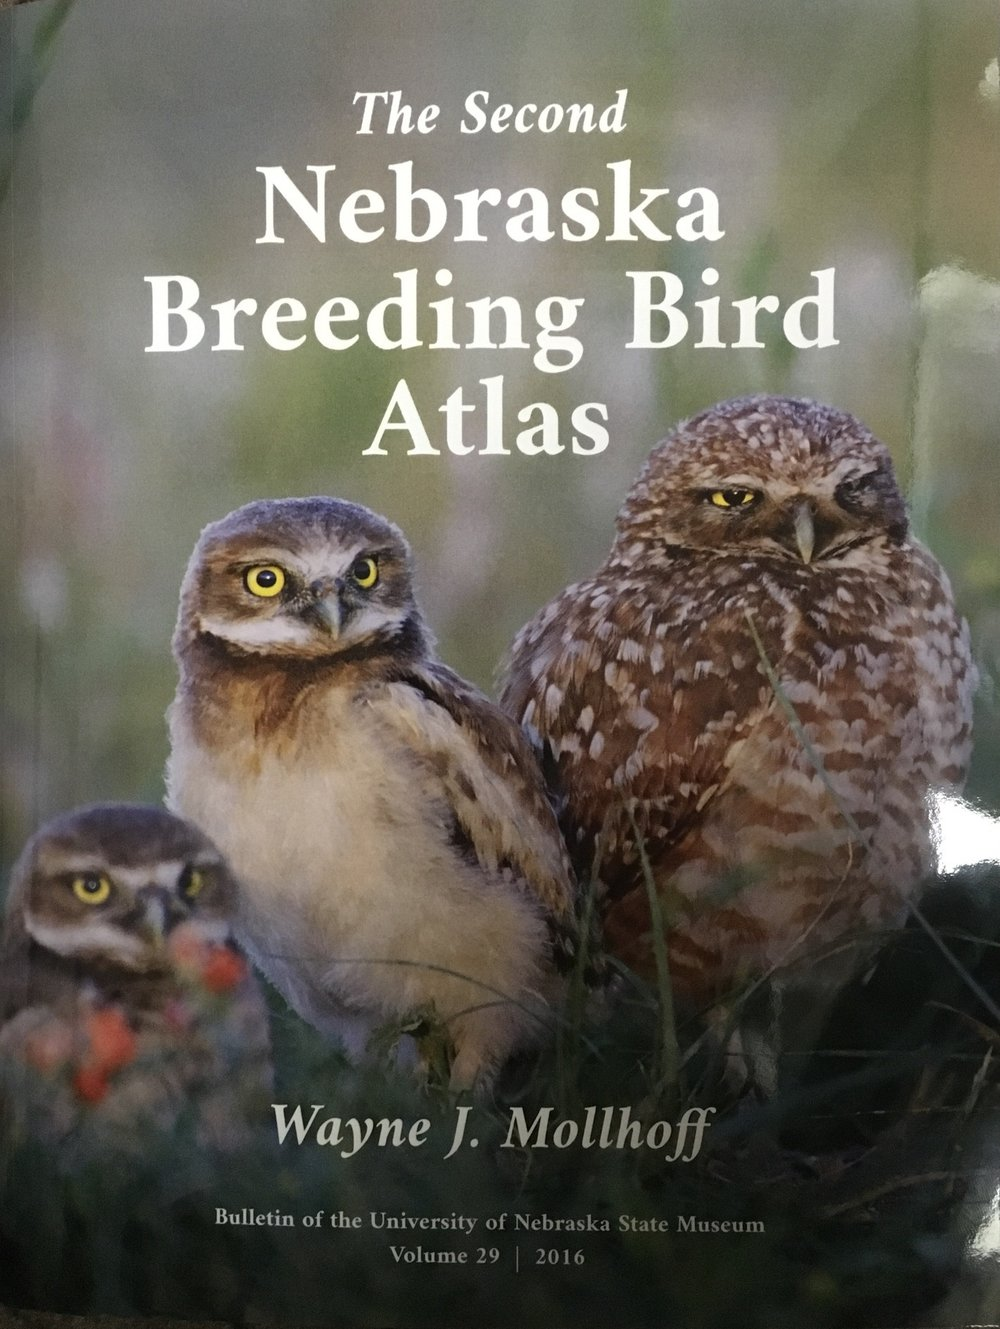 Michael's photo of burrowing owls is the cover photo for the Second Nebraska Breeding Bird Atlas by Wayne J. Mollhoff.